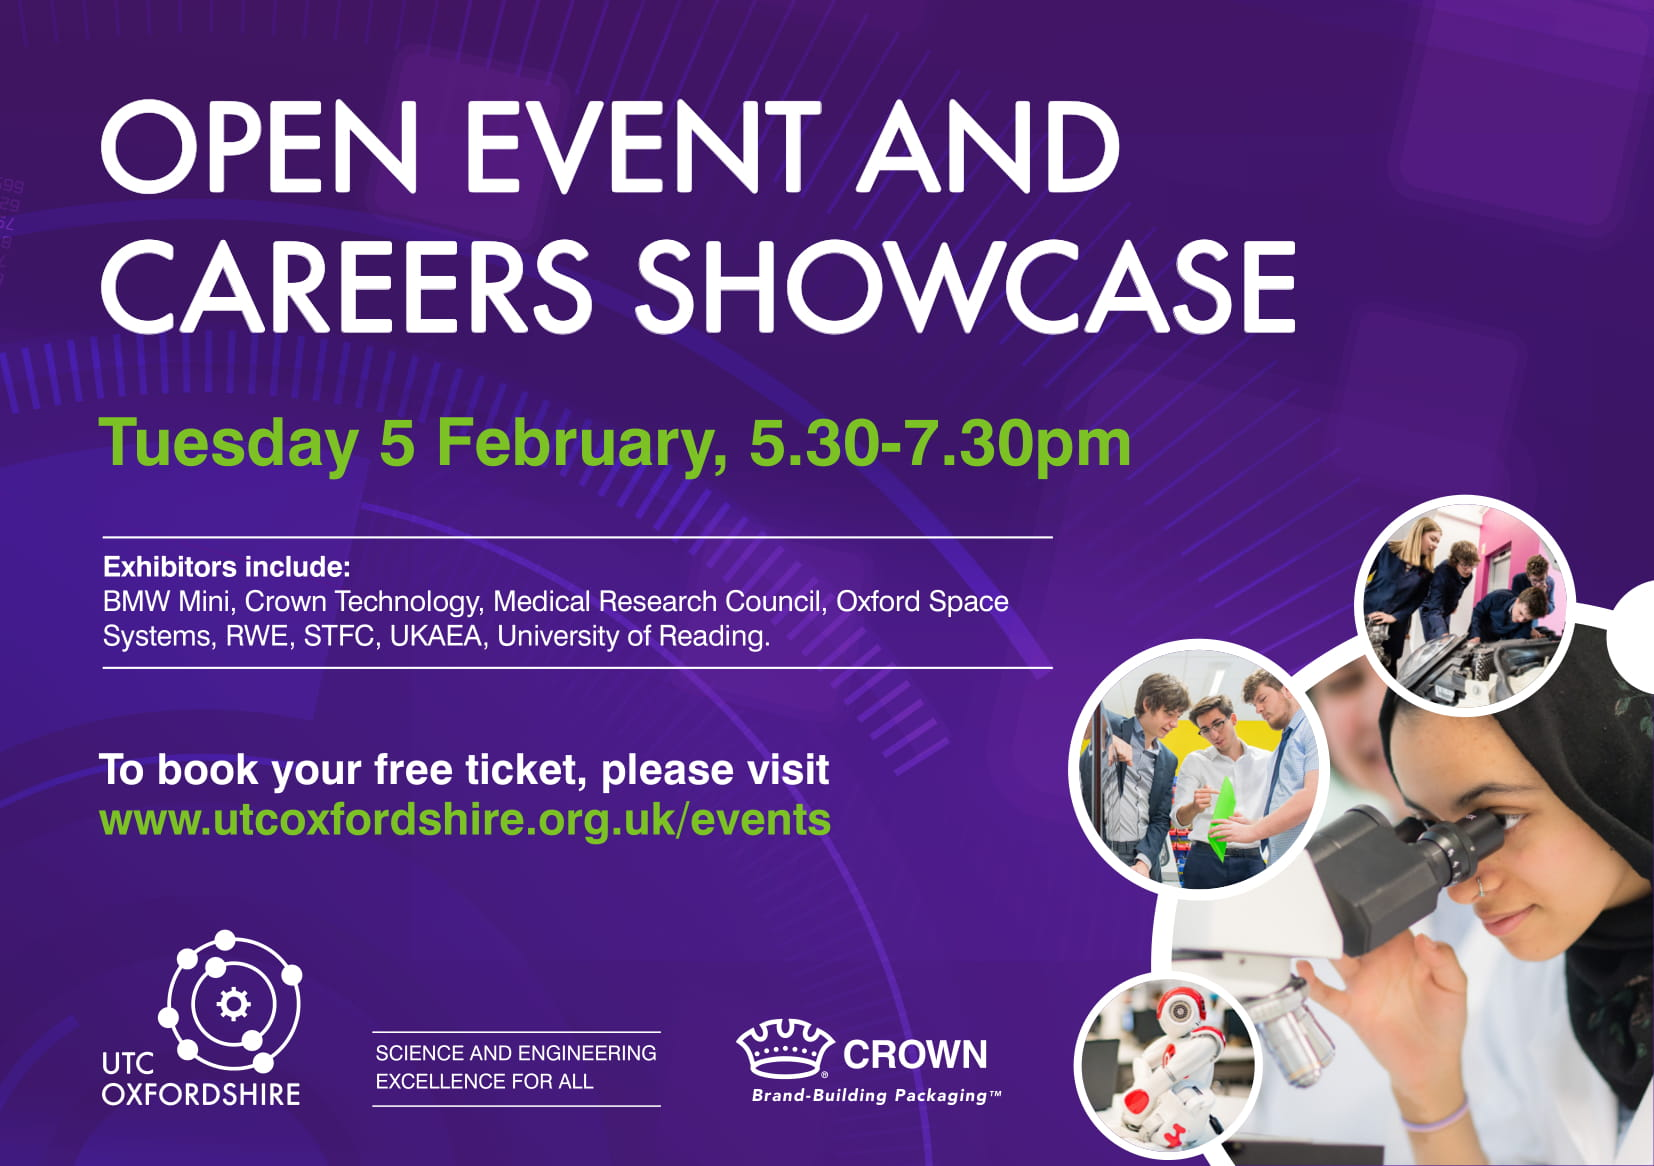 UTC Careers Showcase - http://www.utcoxfordshire.org.uk/events/